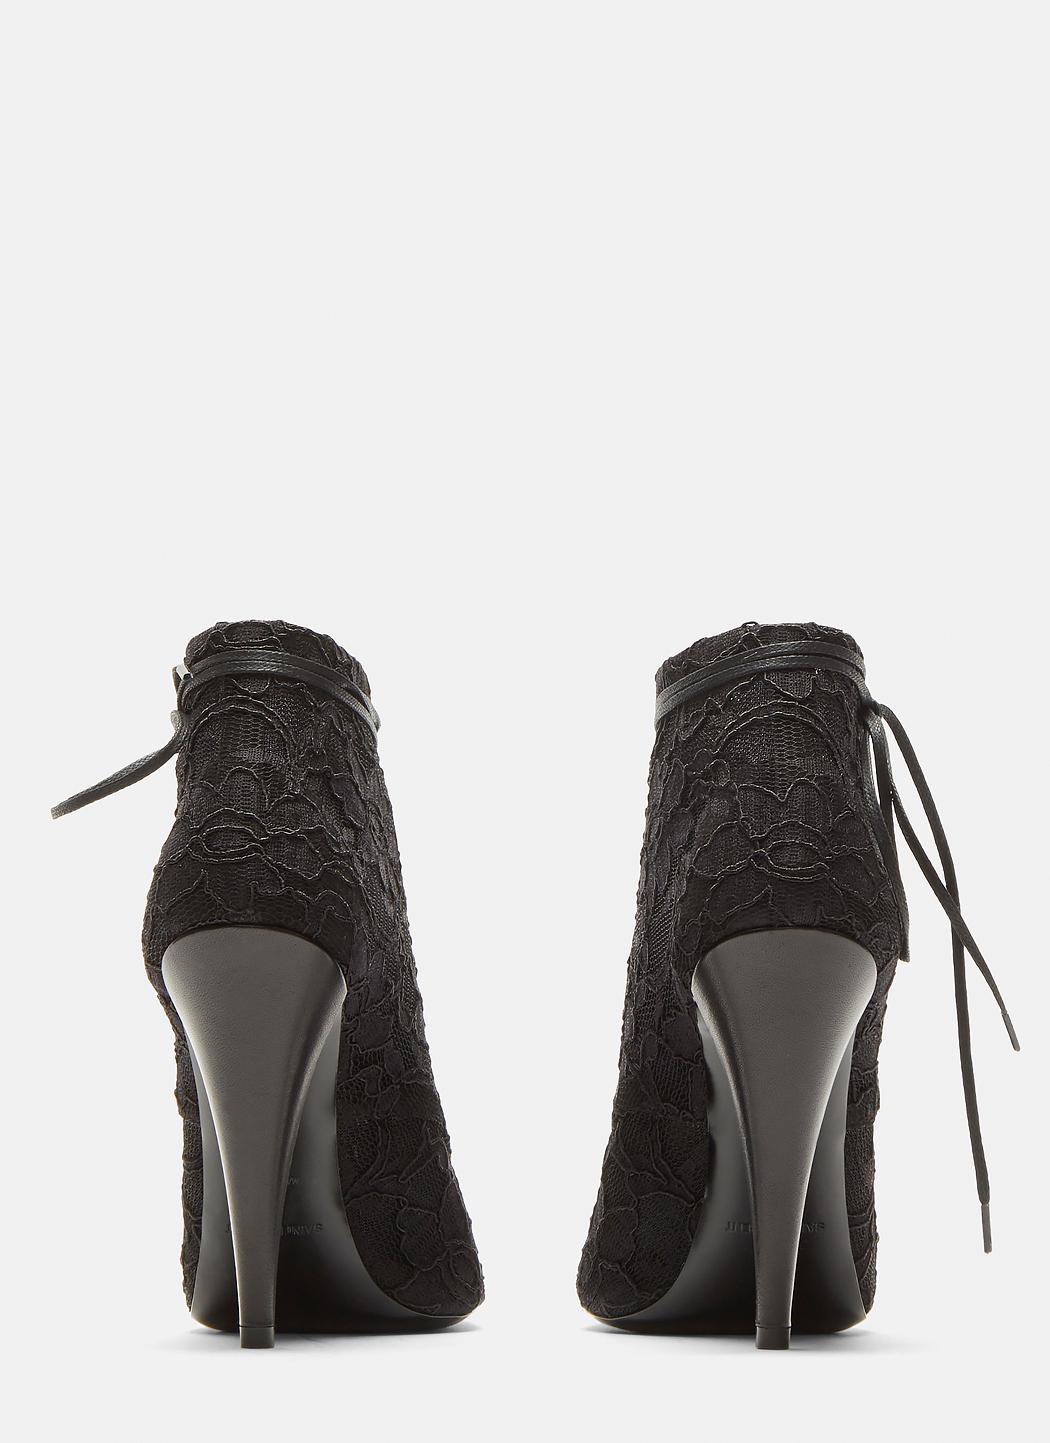 Saint Laurent Pointed Toe Louise Lace-up Ankle Boots GxVQc4hsM